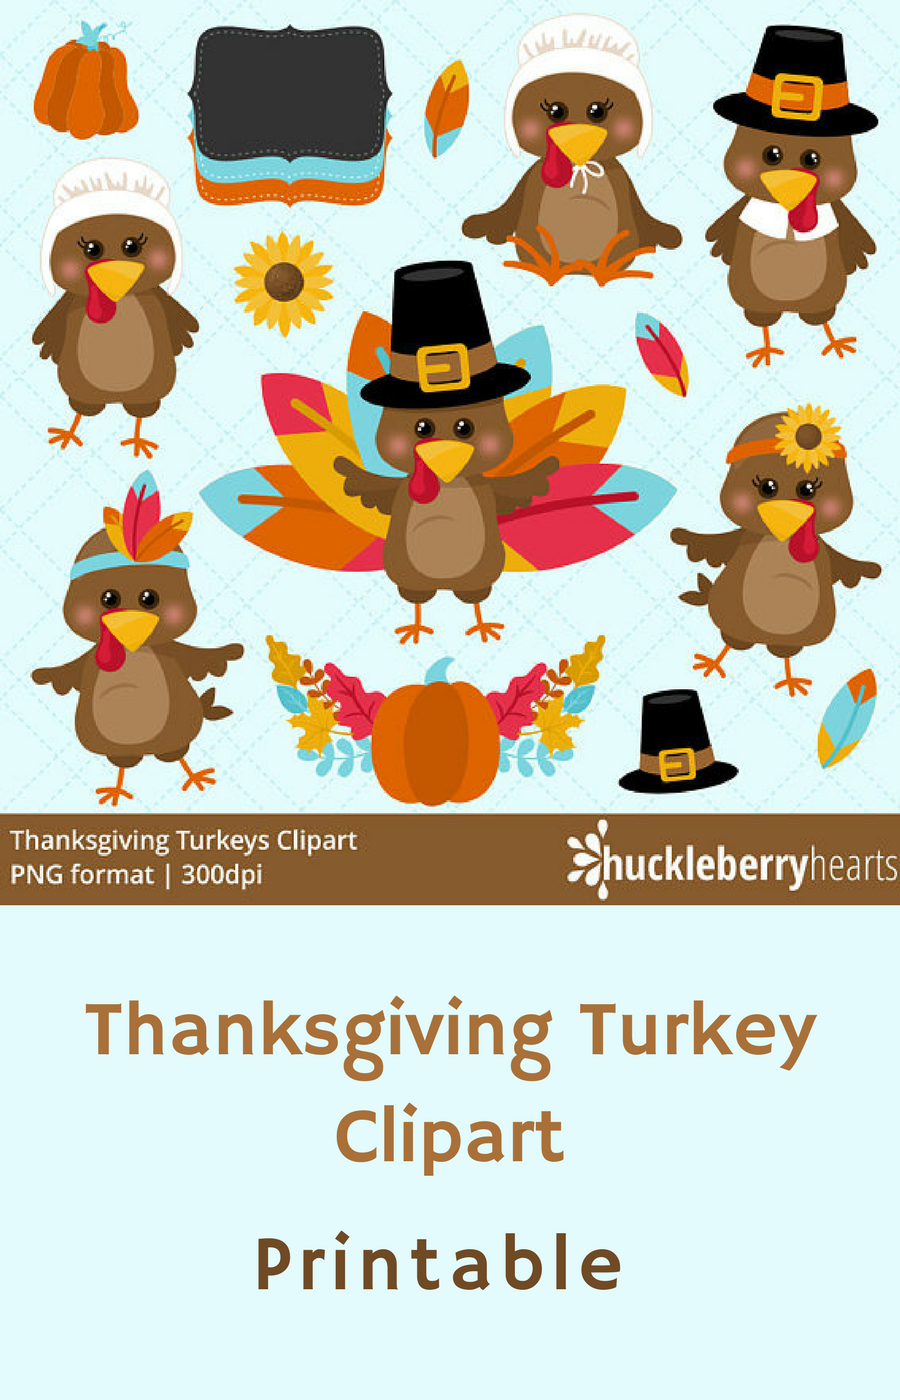 medium resolution of i love this cute thanksgiving clipart turkey clip art turkey clip art turkey graphics printable commercial use nnt afflink clipart printable